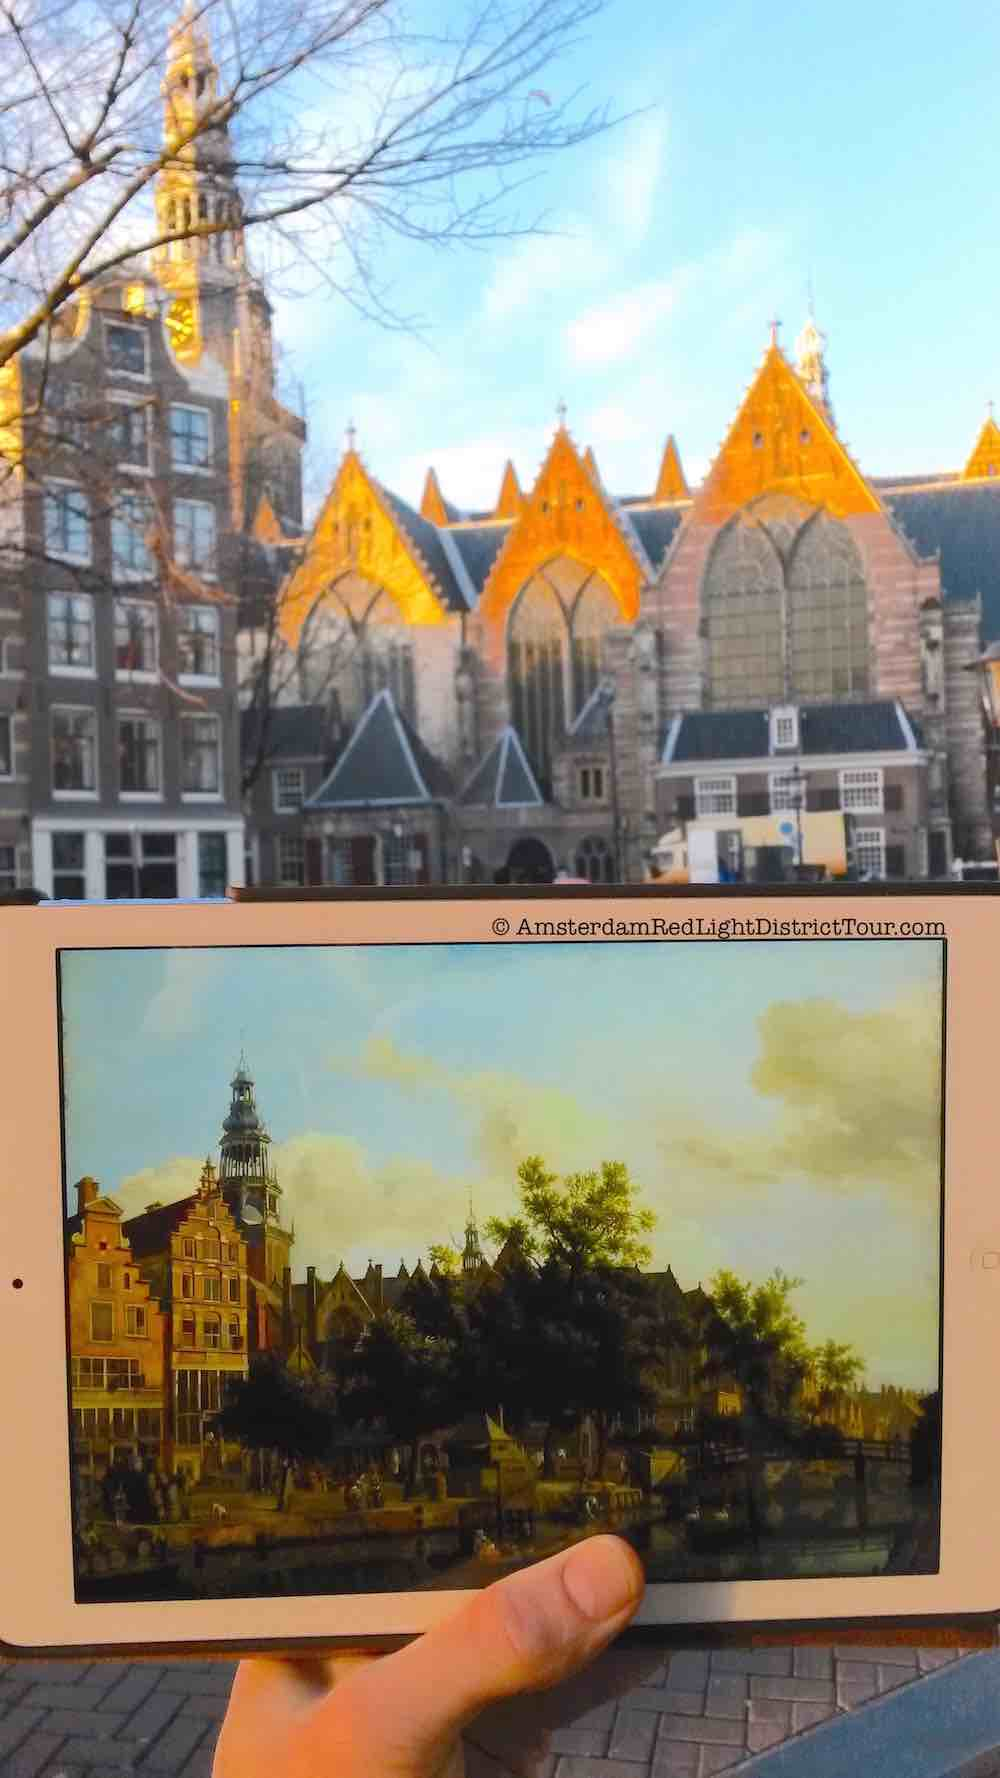 Amsterdam Red Light District Now and Then: The Old Church and Oudezijds Voorburgwal